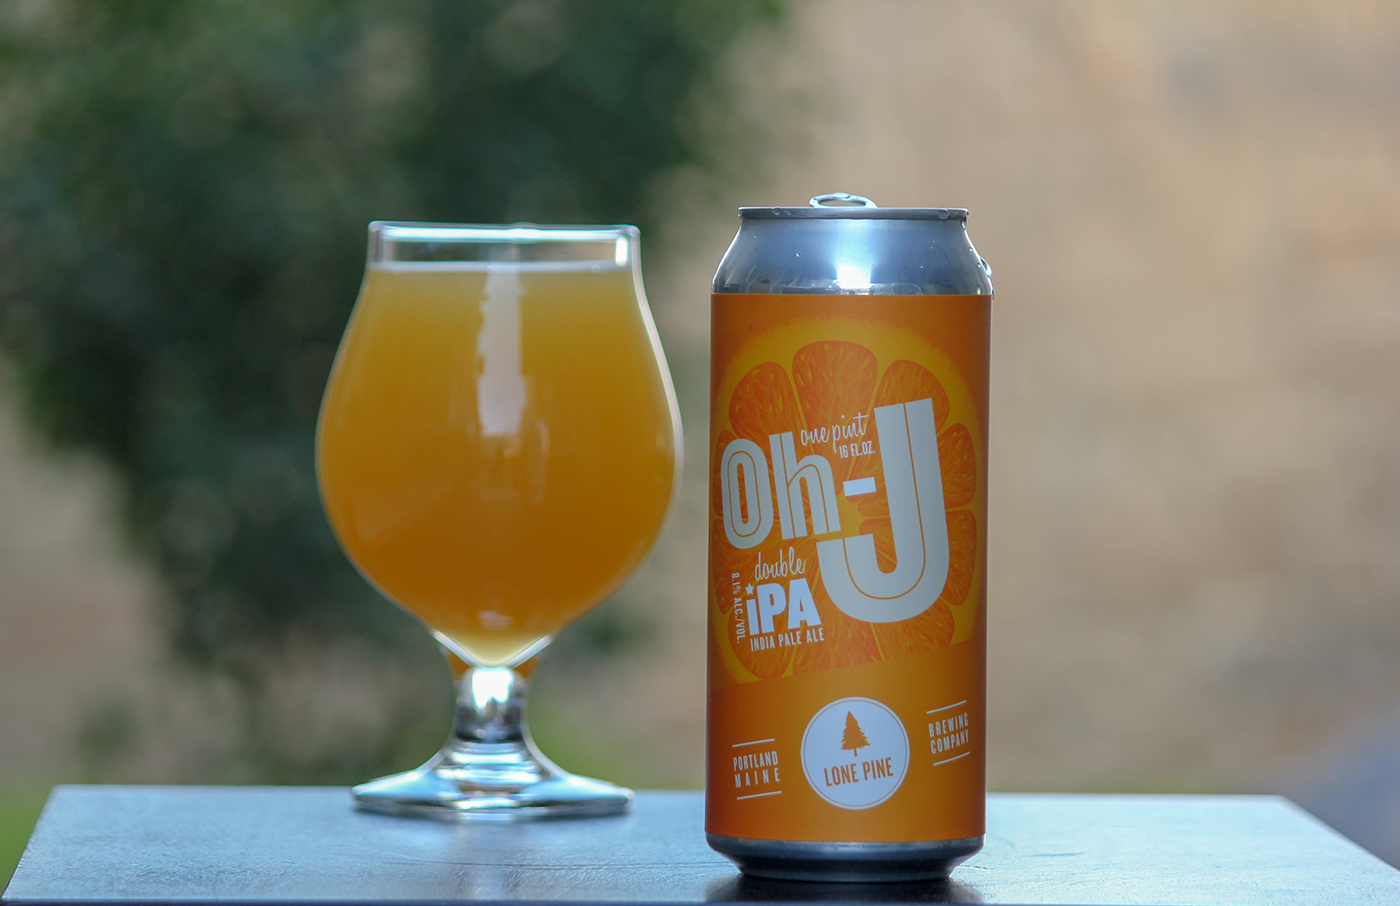 Lone Pine Brewing's Oh-J pours like a classic New England IPA—murky and unfiltered with a natural haze and a fluffy, white head.